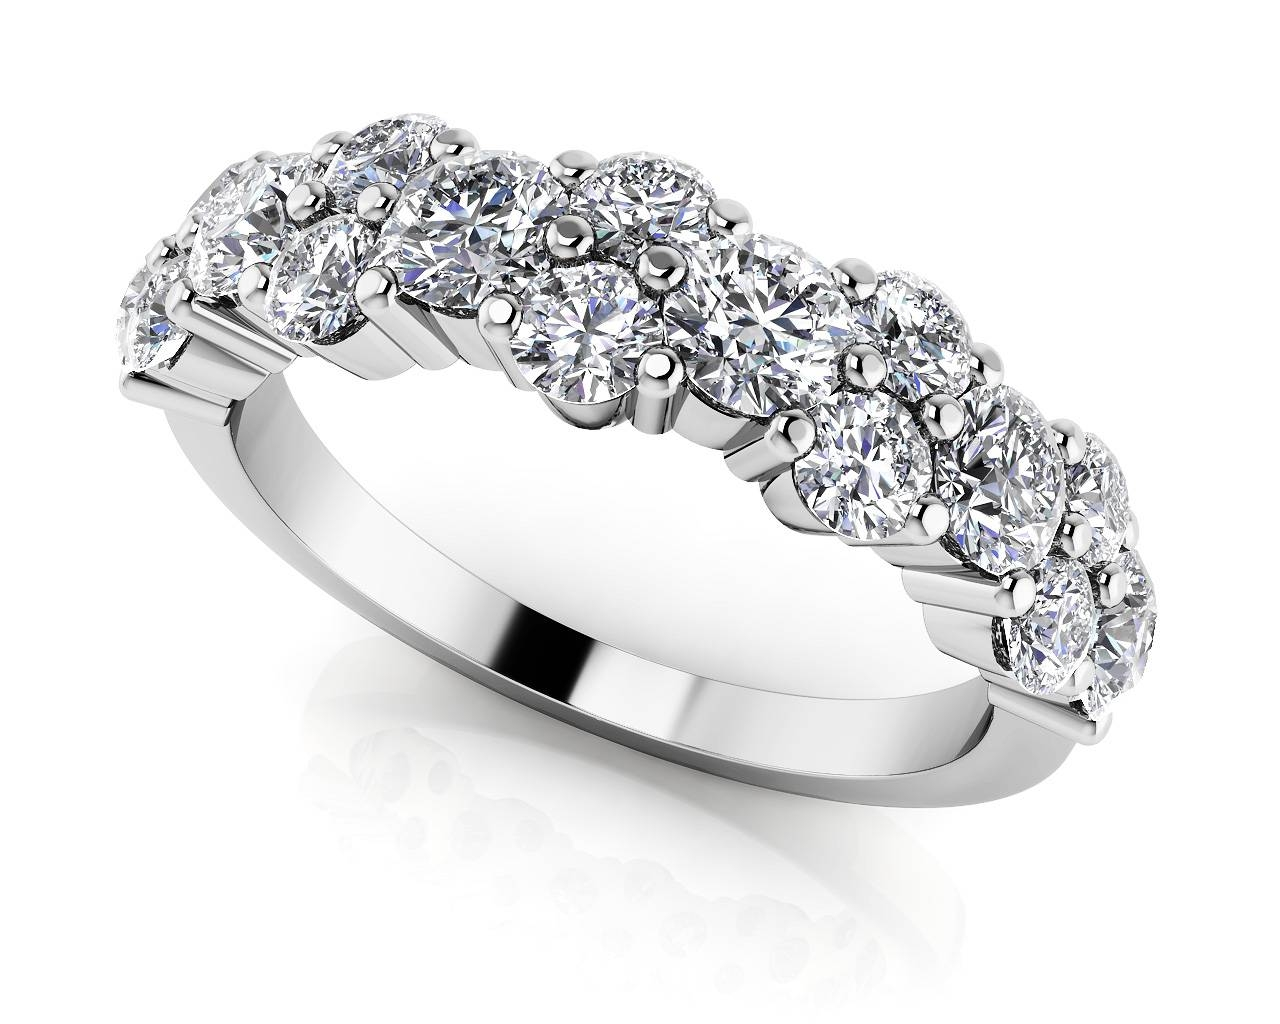 Wedding Rings : Art Deco Anniversary Band Stackable Diamond Intended For Most Up To Date 10 Year Anniversary Rings Ideas (View 14 of 15)